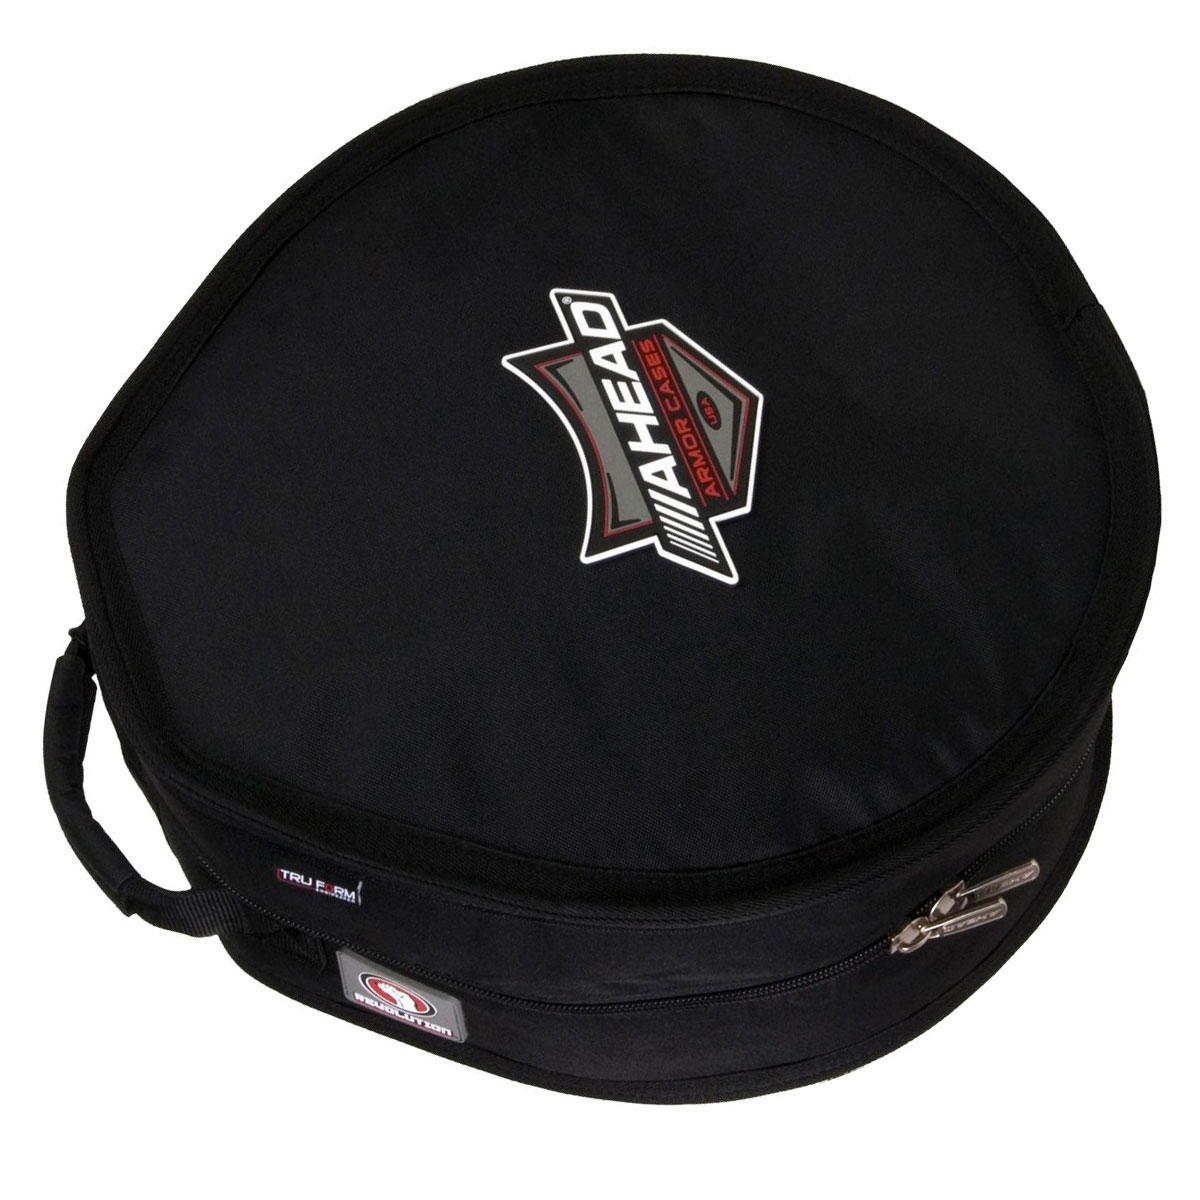 "Ahead Armor 6.5"" (Deep) x 15"" (Diameter) Free Floater Snare Case"